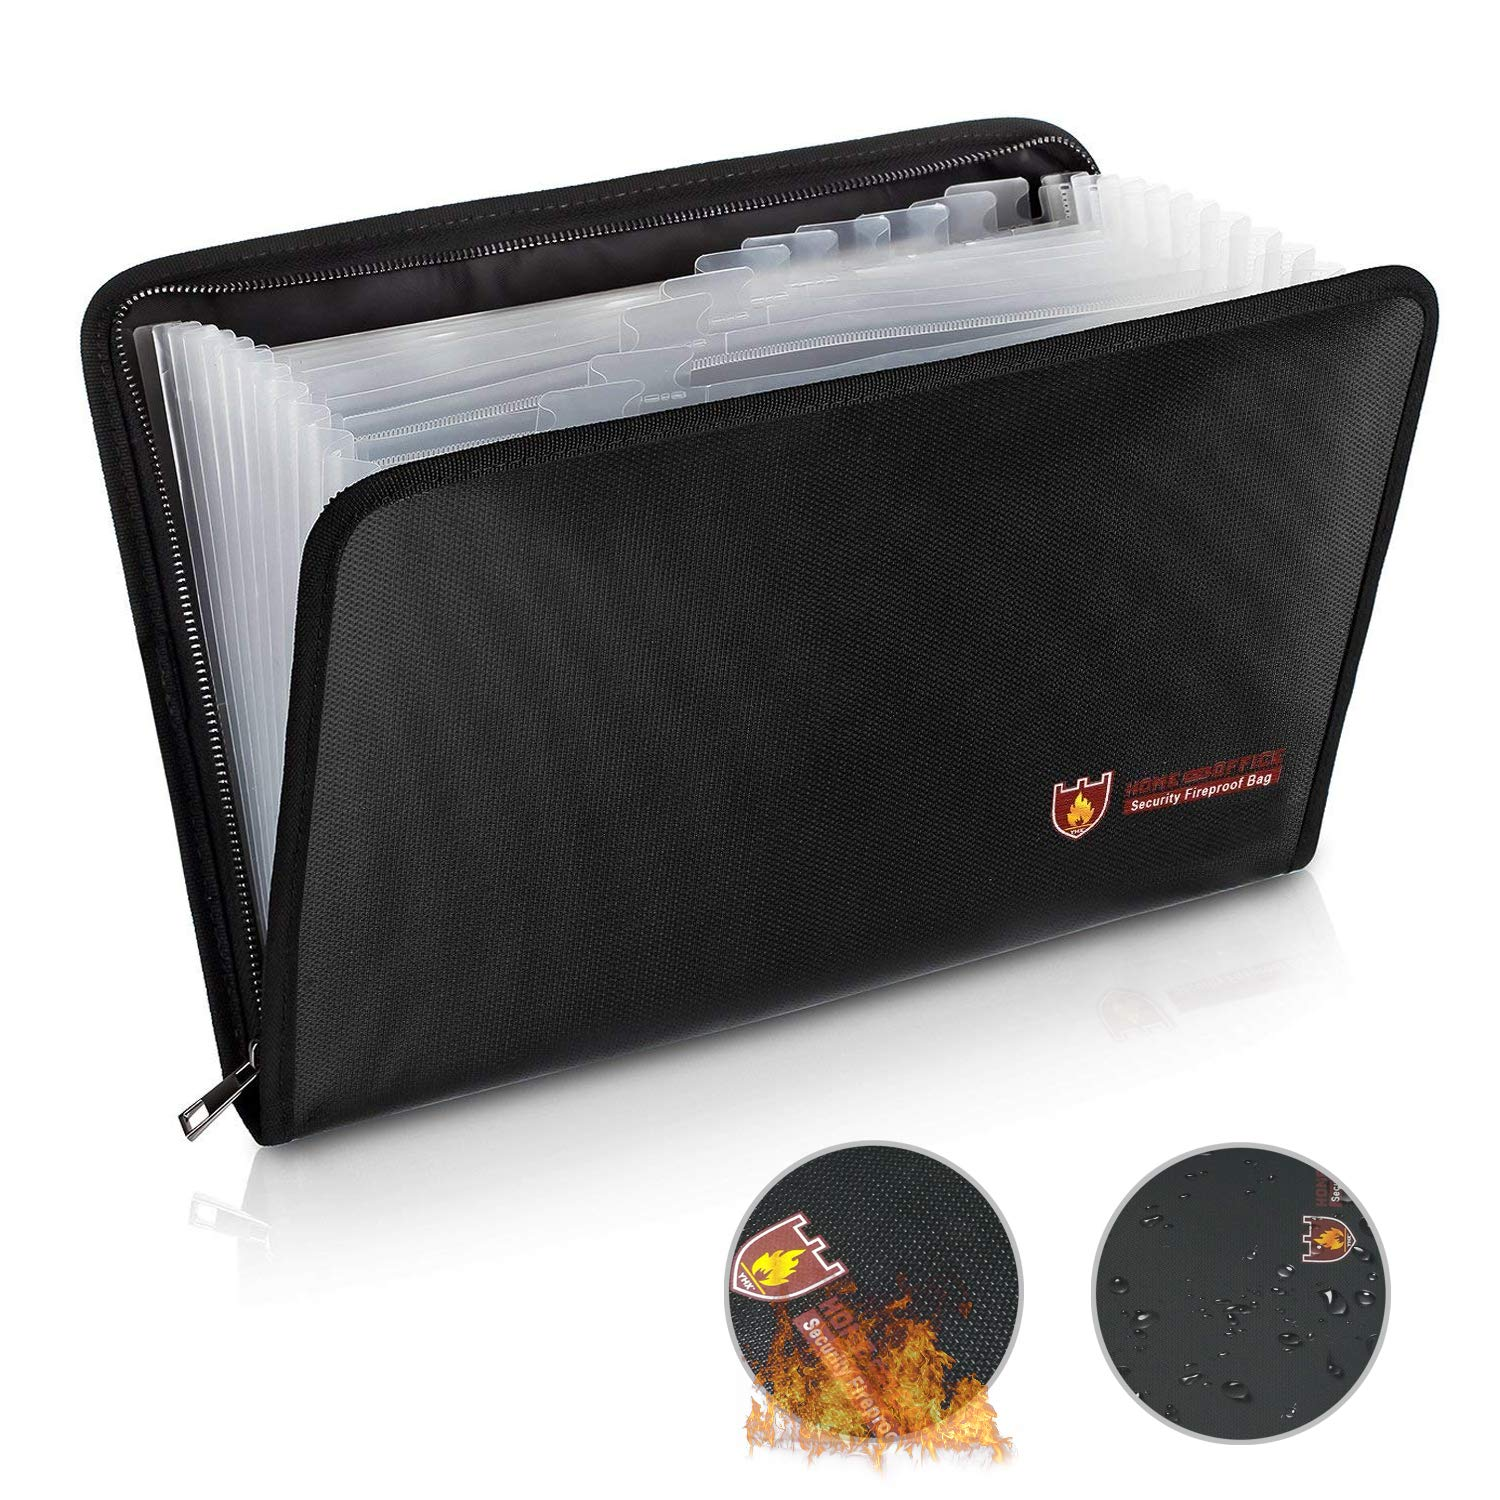 Fireproof File Folder Fireproof Document Bag with 12 Pockets, Non-Itchy Silicone Coated Fire Proof and Water Proof Portable File Organizer Pouch with Fire Resistant Zipper in A4 Size (14.3'' x 9.8'')